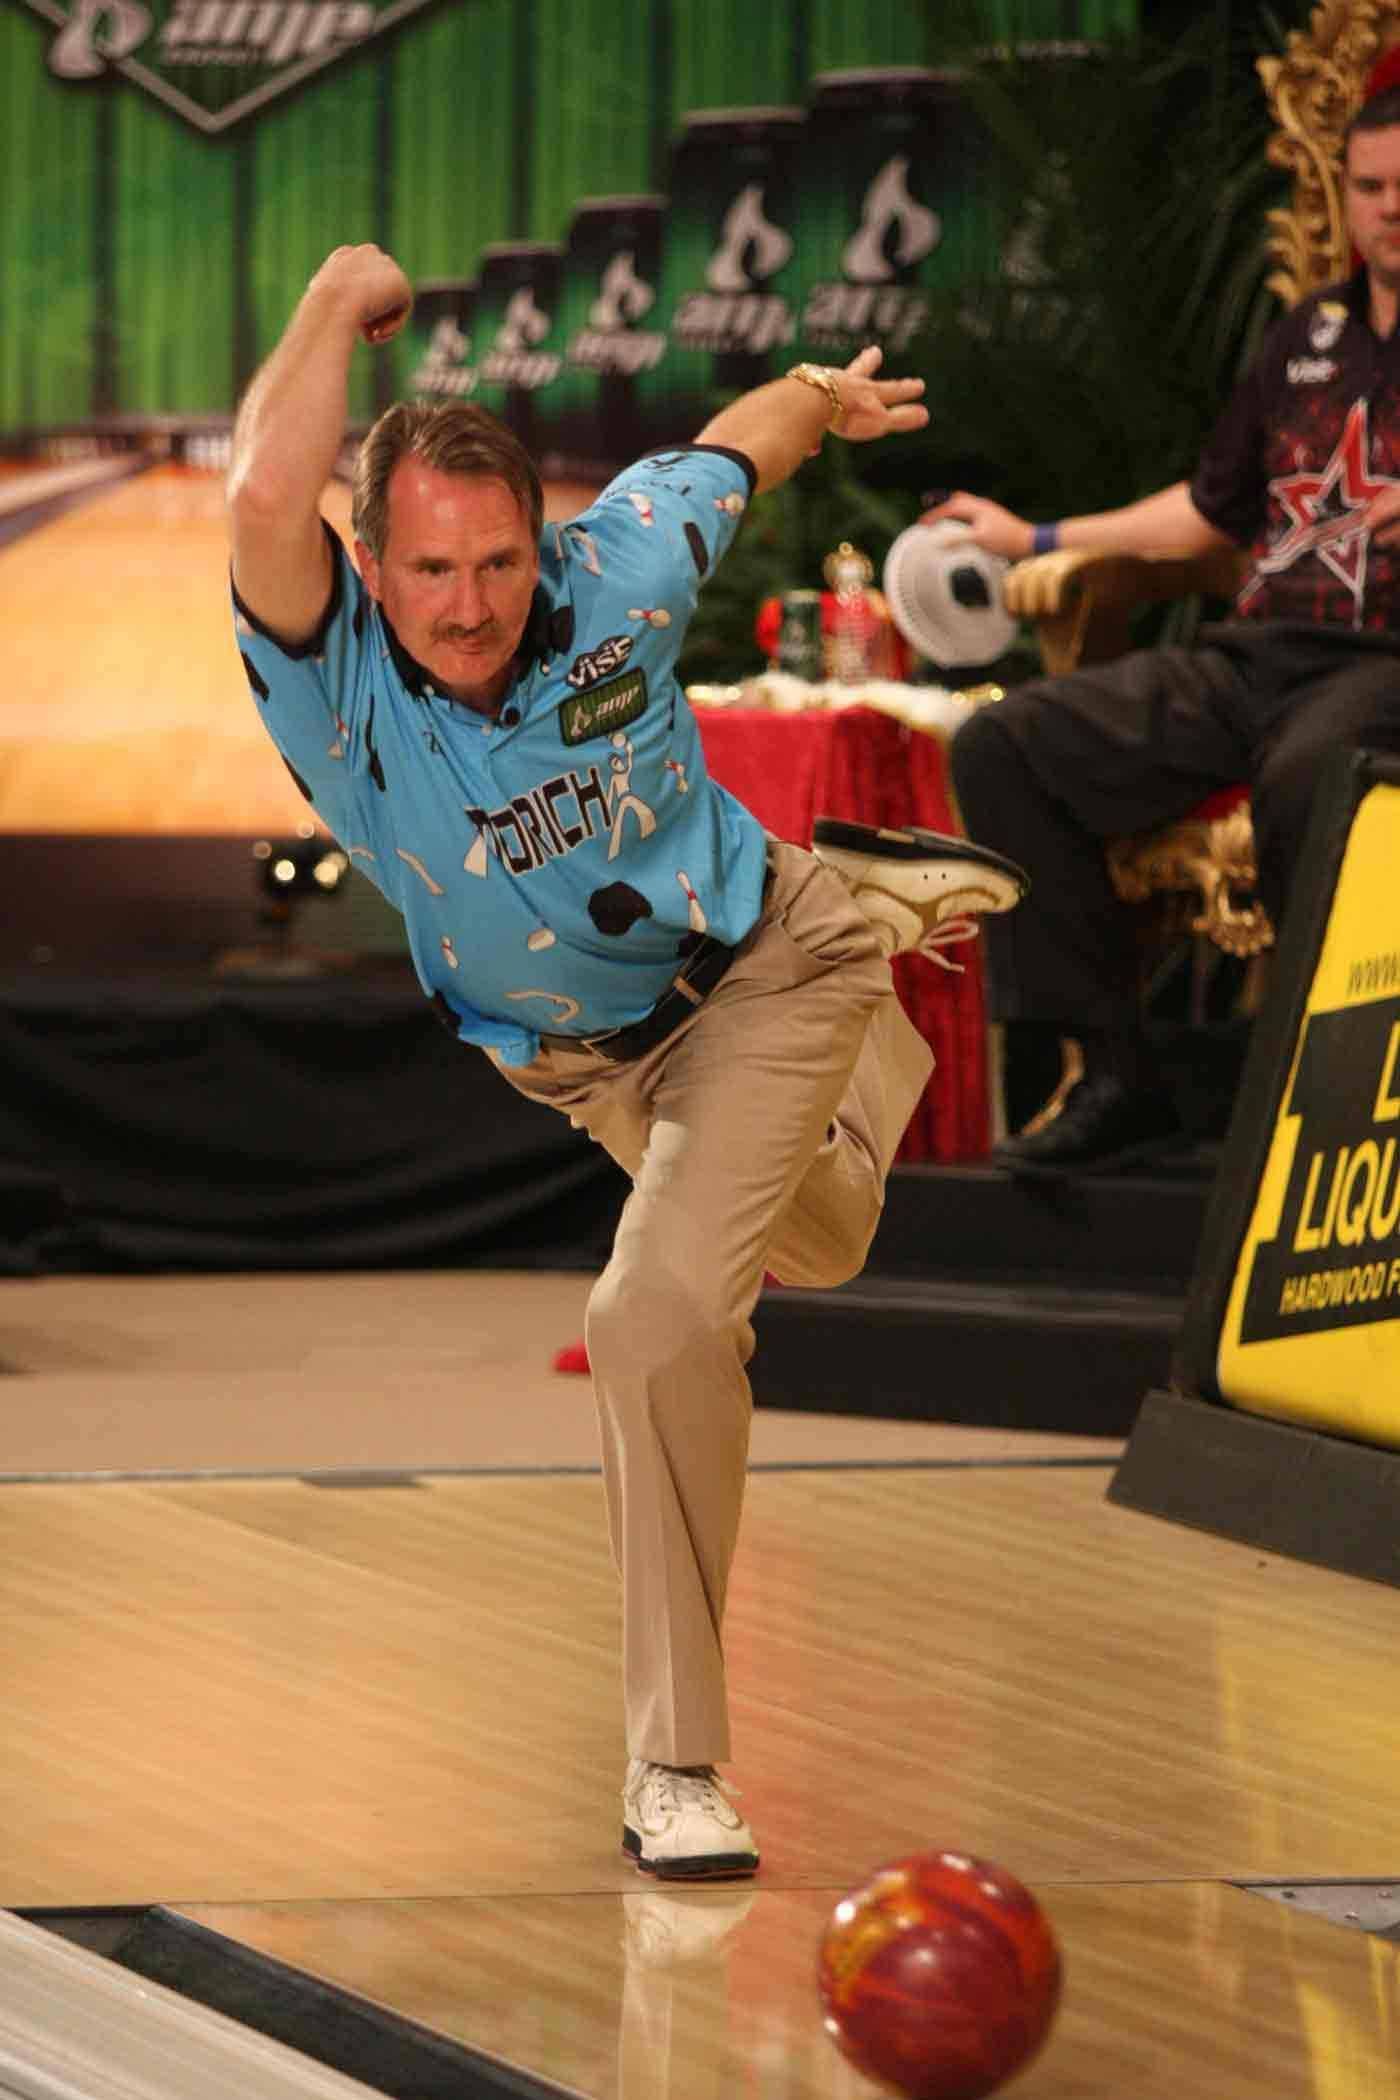 Walter Ray Williams e of my favorite bowlers of all times